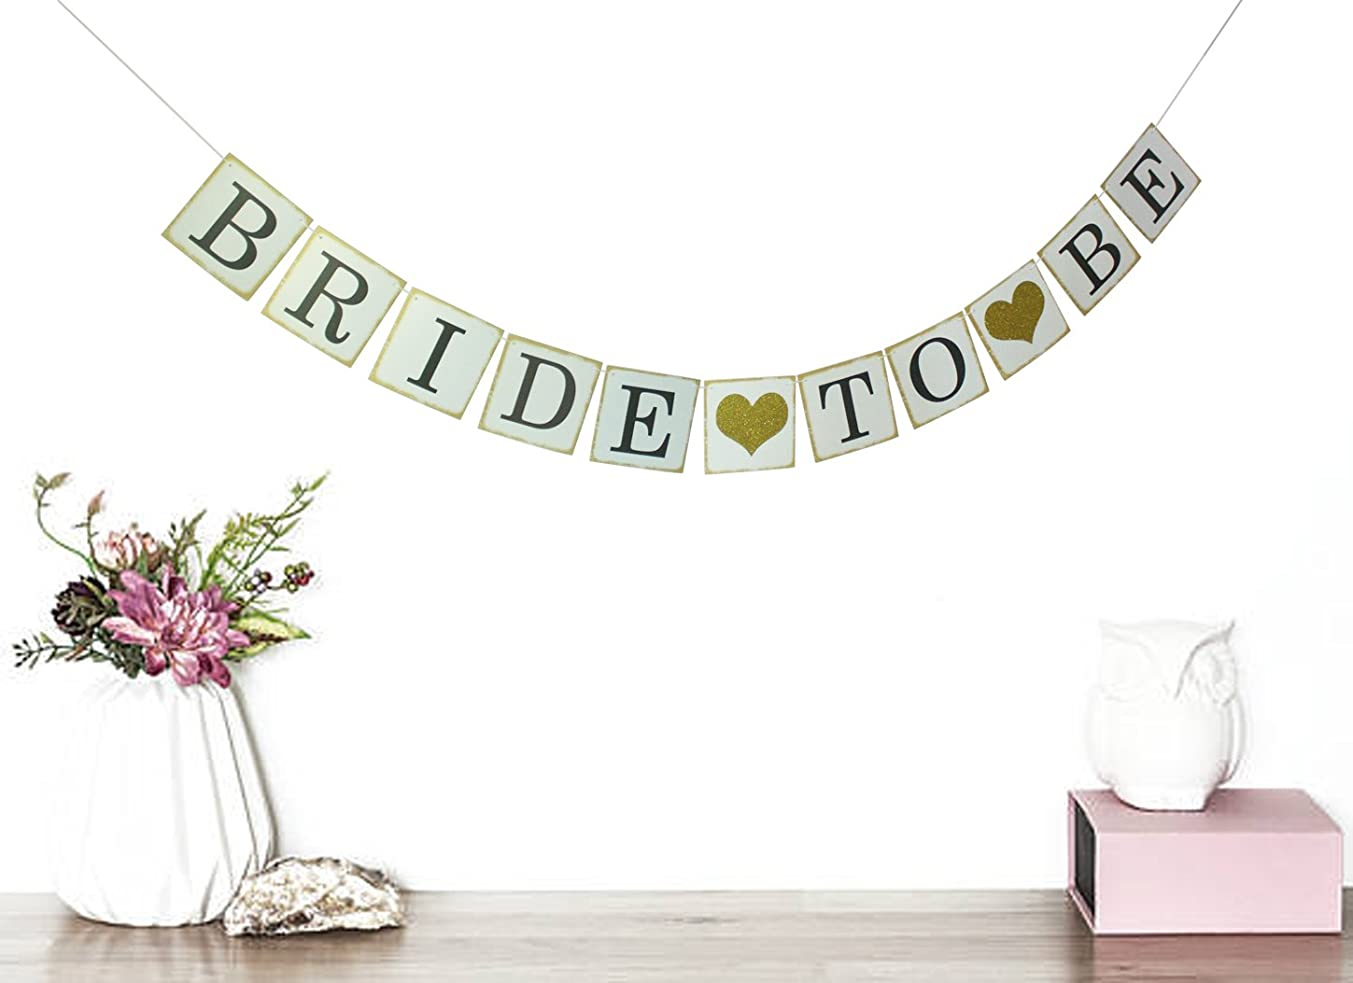 Bride To Be Banner with Gold Glitter Heart- Bridal Shower Decor - Bachelorette Party - Hens Party- Photo Props Signs